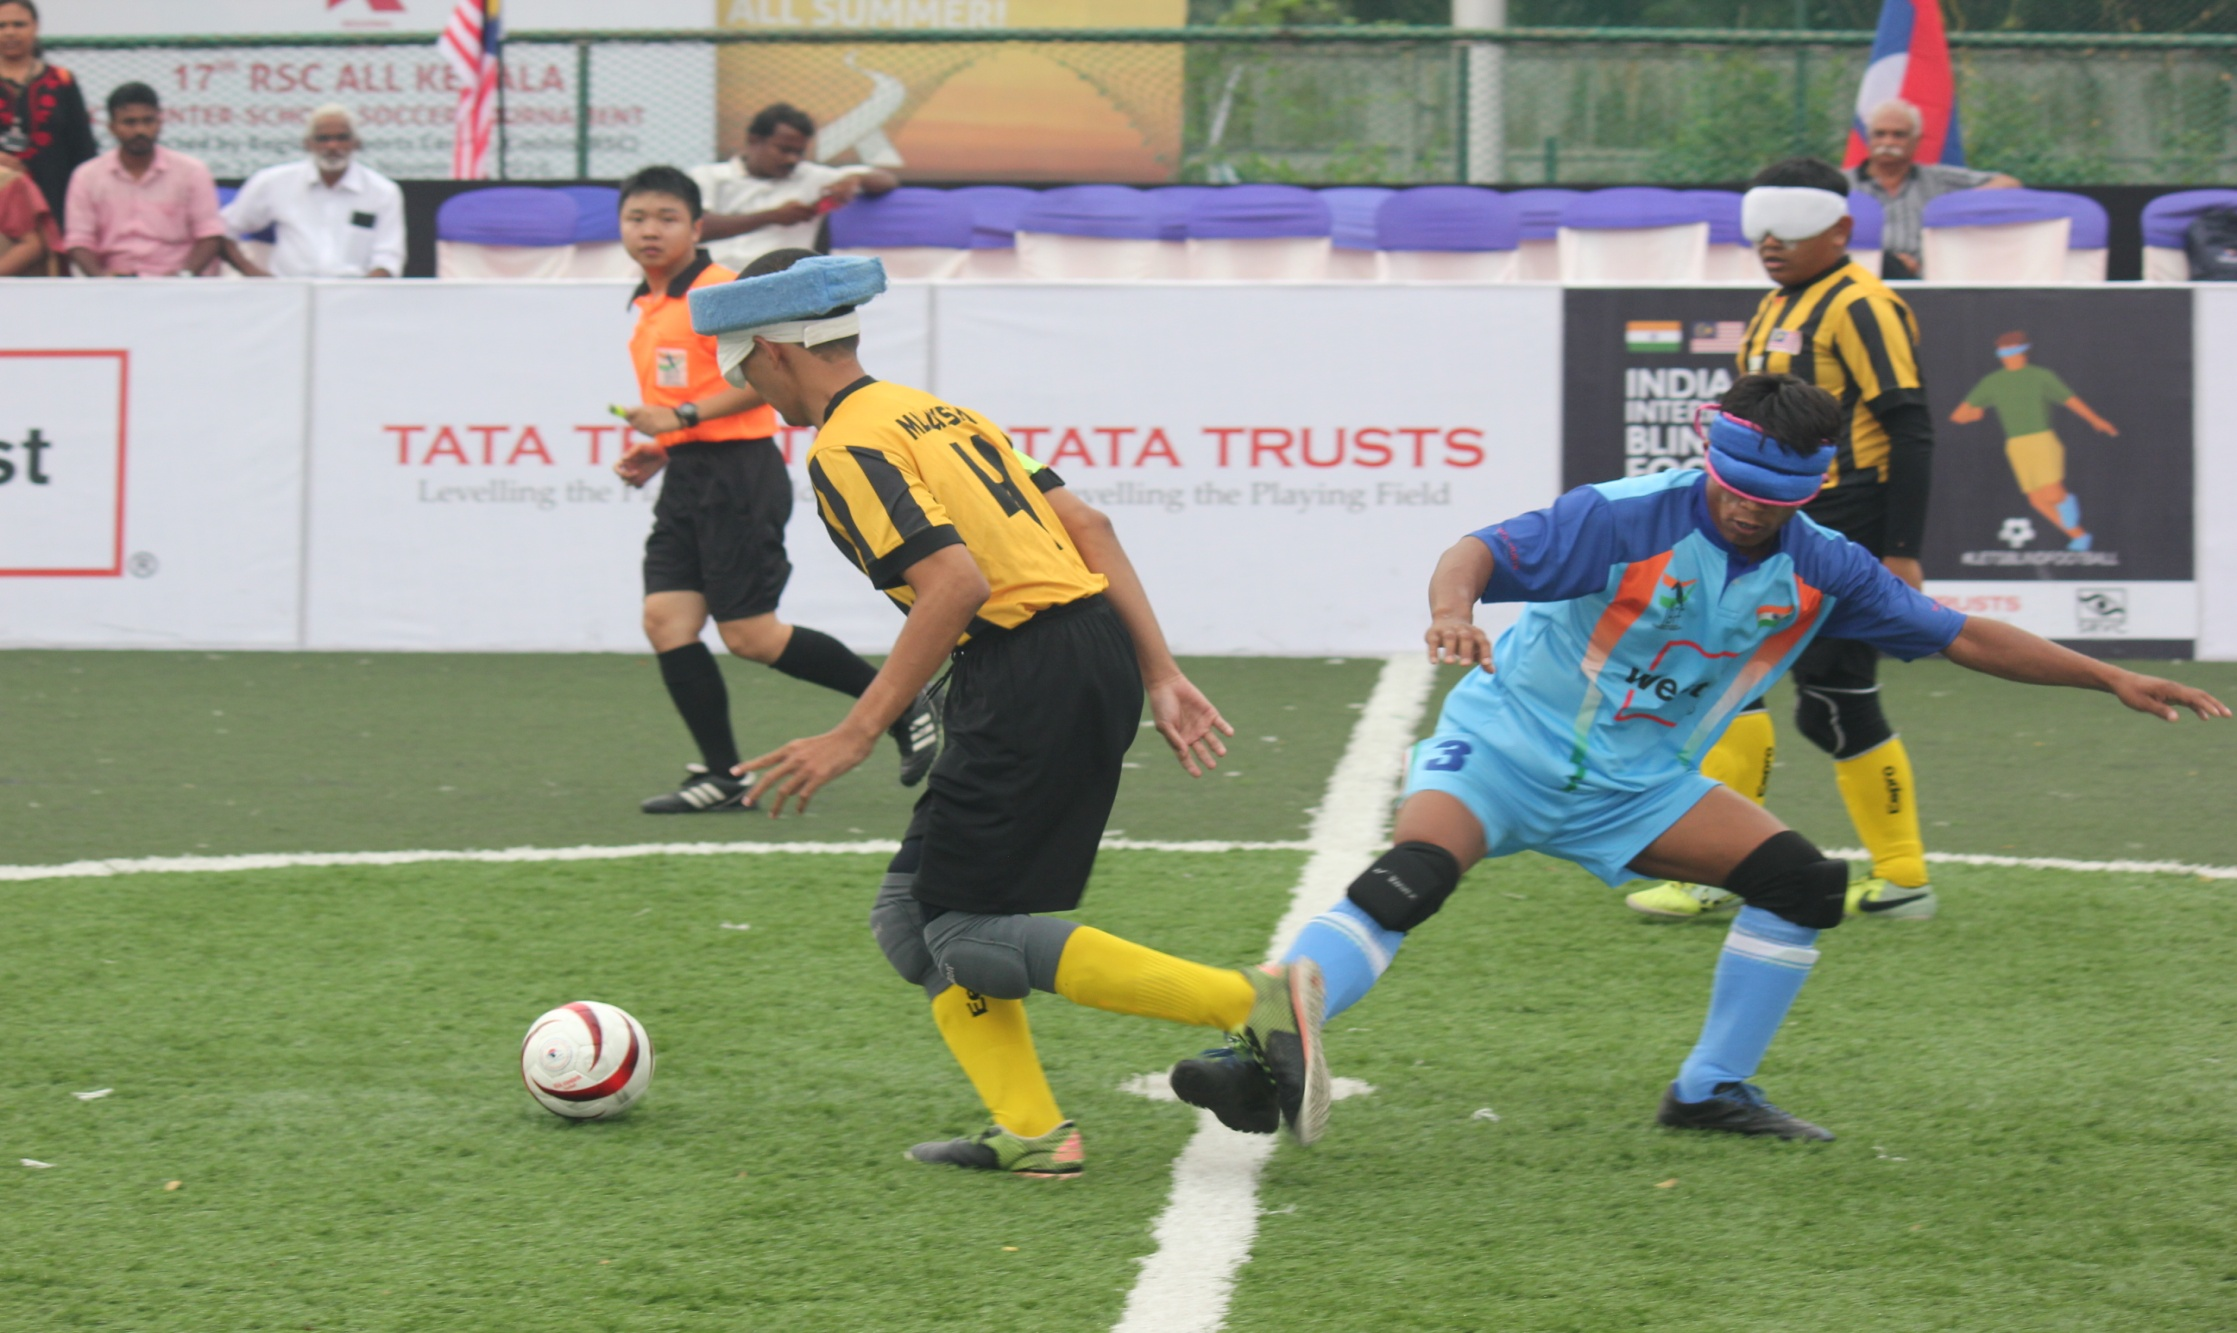 Indian player defence against malaysian player